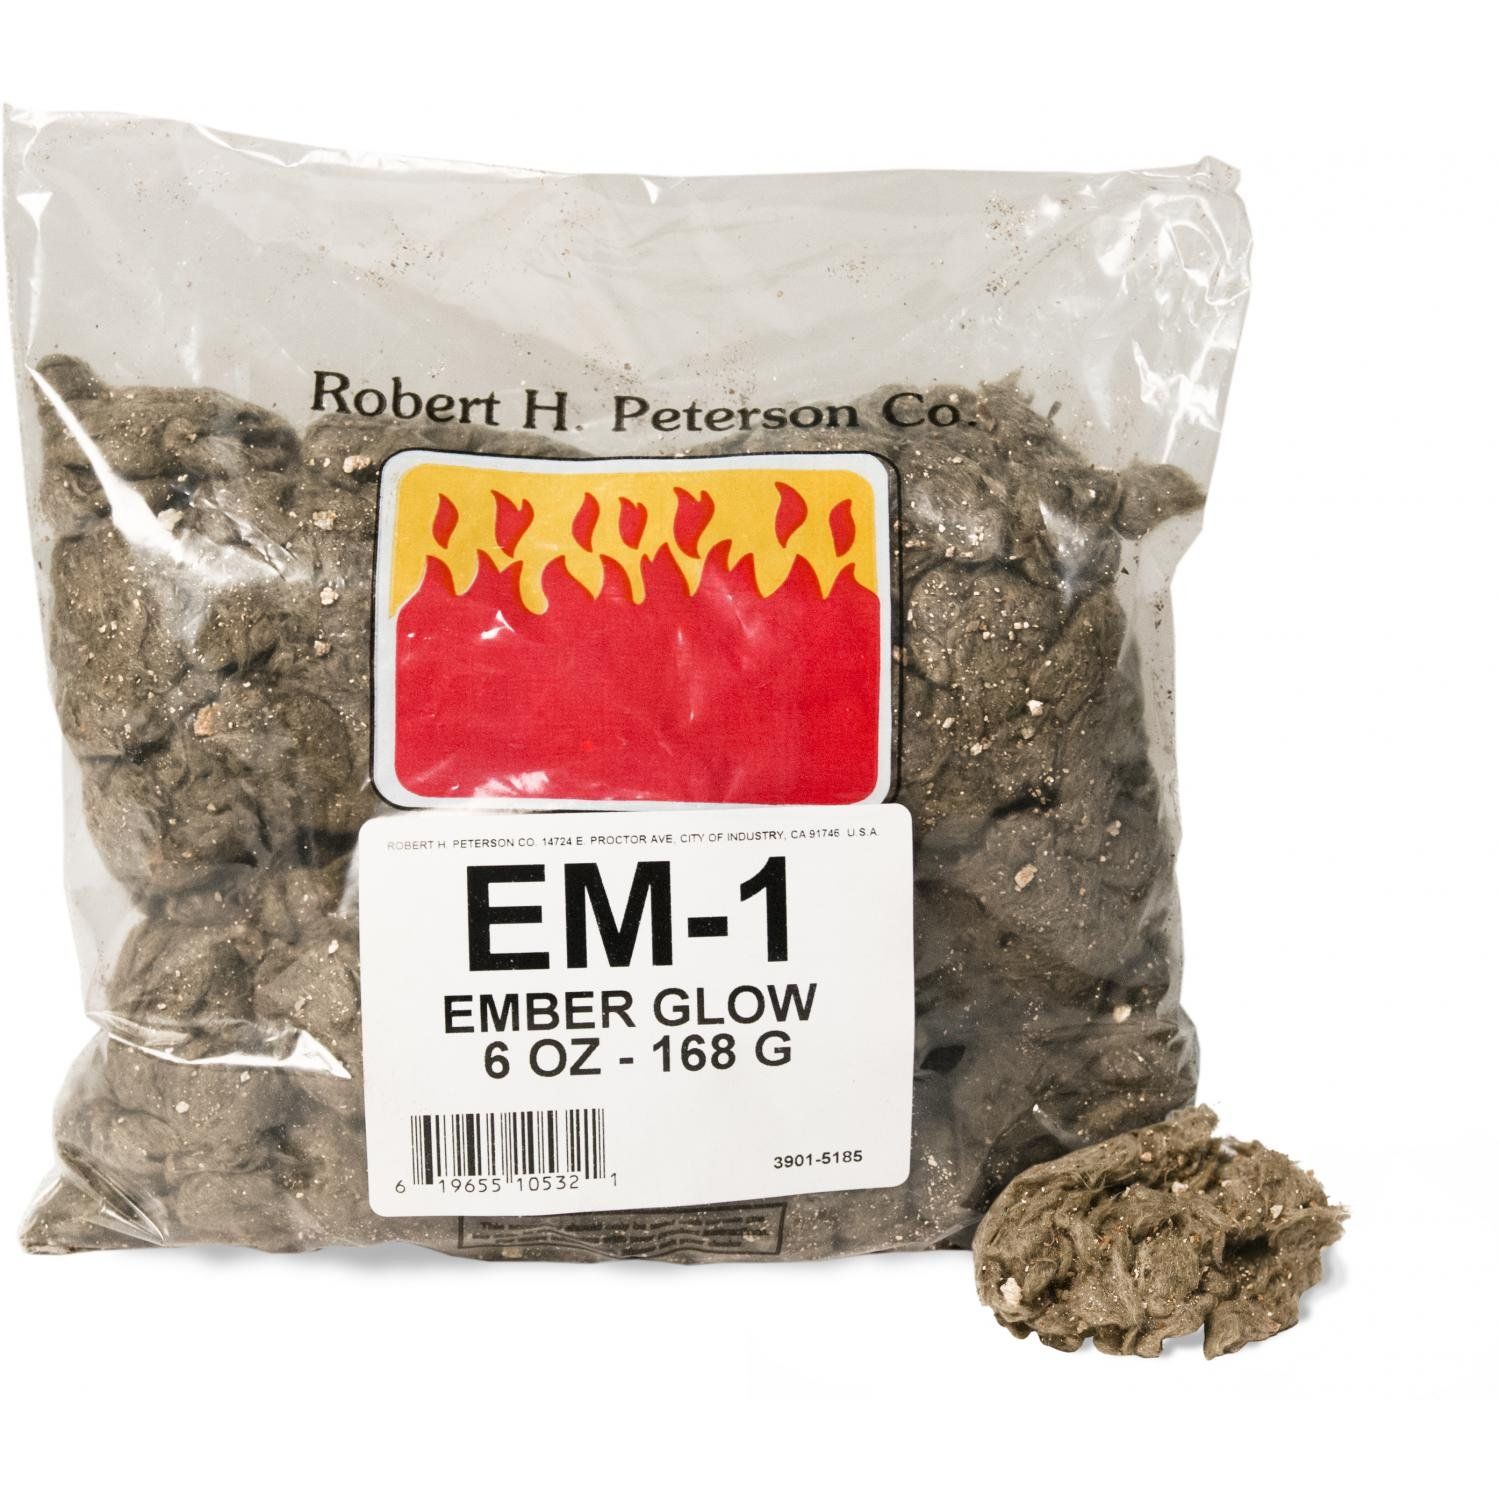 Buy Peterson Gas Logs Ember Glow - 6 Oz. Bag: Gas Logs - Amazon.com ? FREE DELIVERY possible on eligible purchases